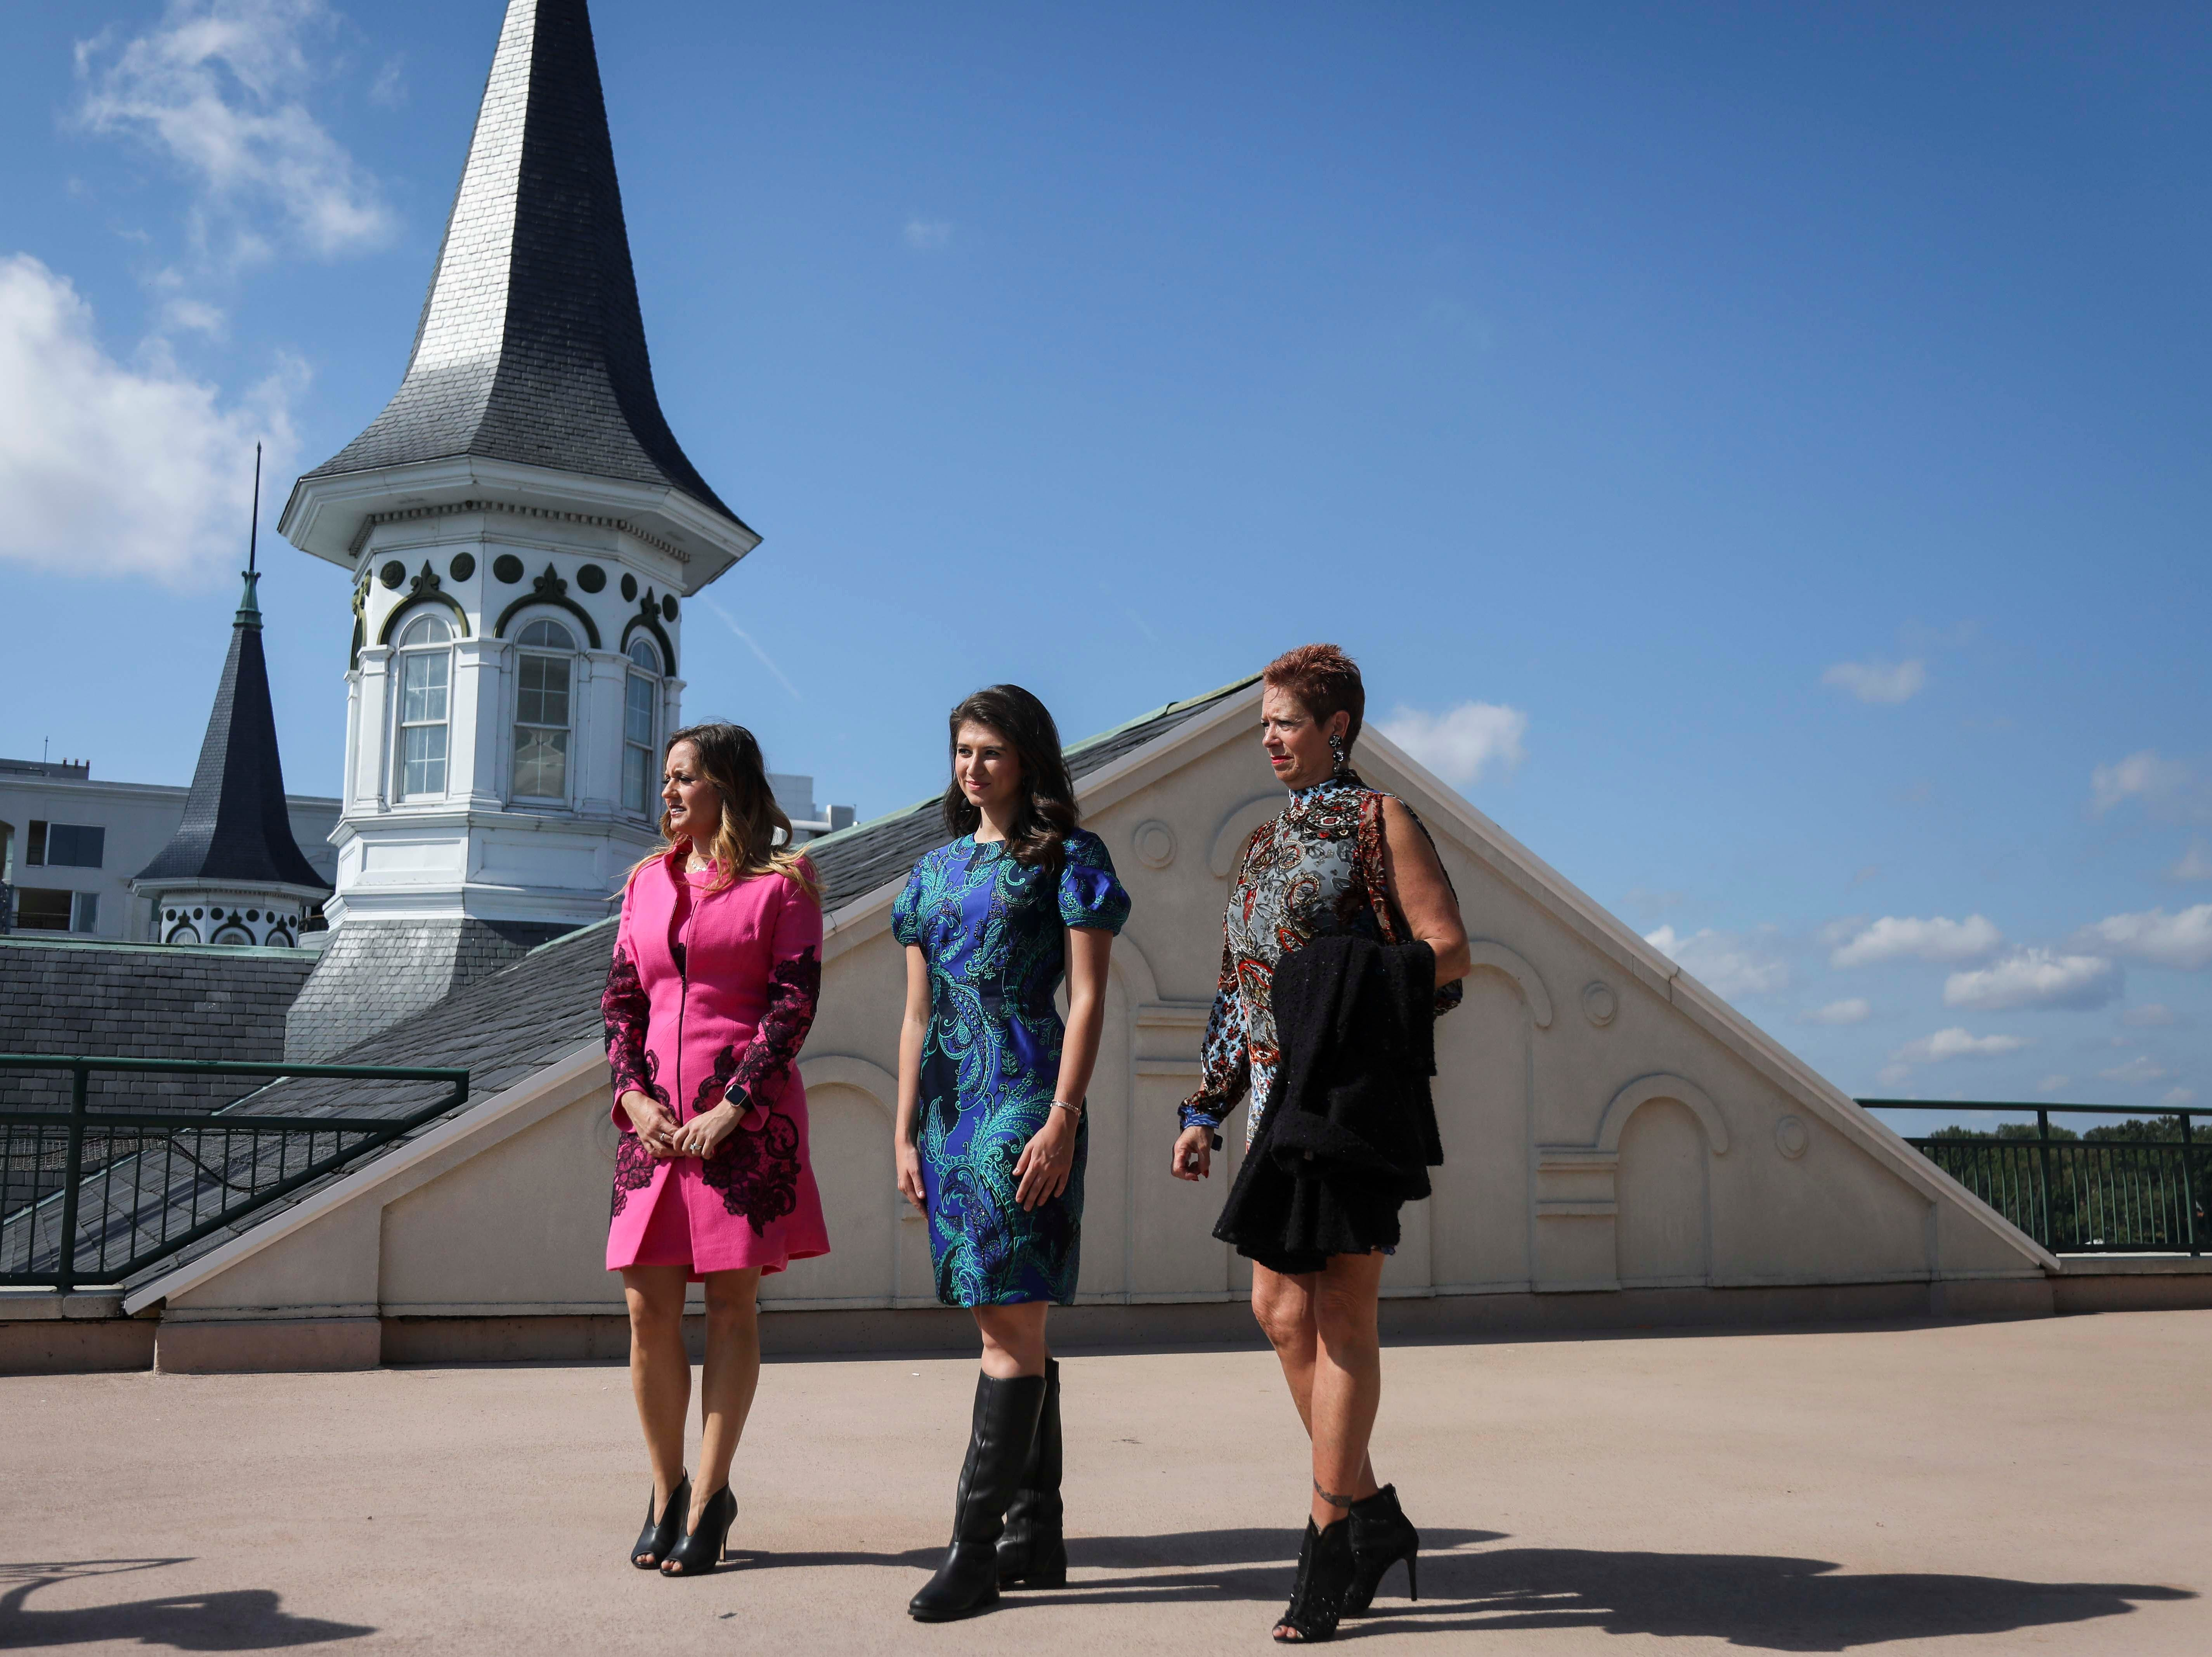 From left to right: Candice Isa, Katie Bouchard and Patty Ethington don dresses made by Lourdes Chavez and hats made by Christine Moore, track fashion expert and owner of Cam Hats, during an interview with the Courier Journal ahead of the Breeders Cup (November 3) at Churchill Downs on Wednesday, October 3, 2018.